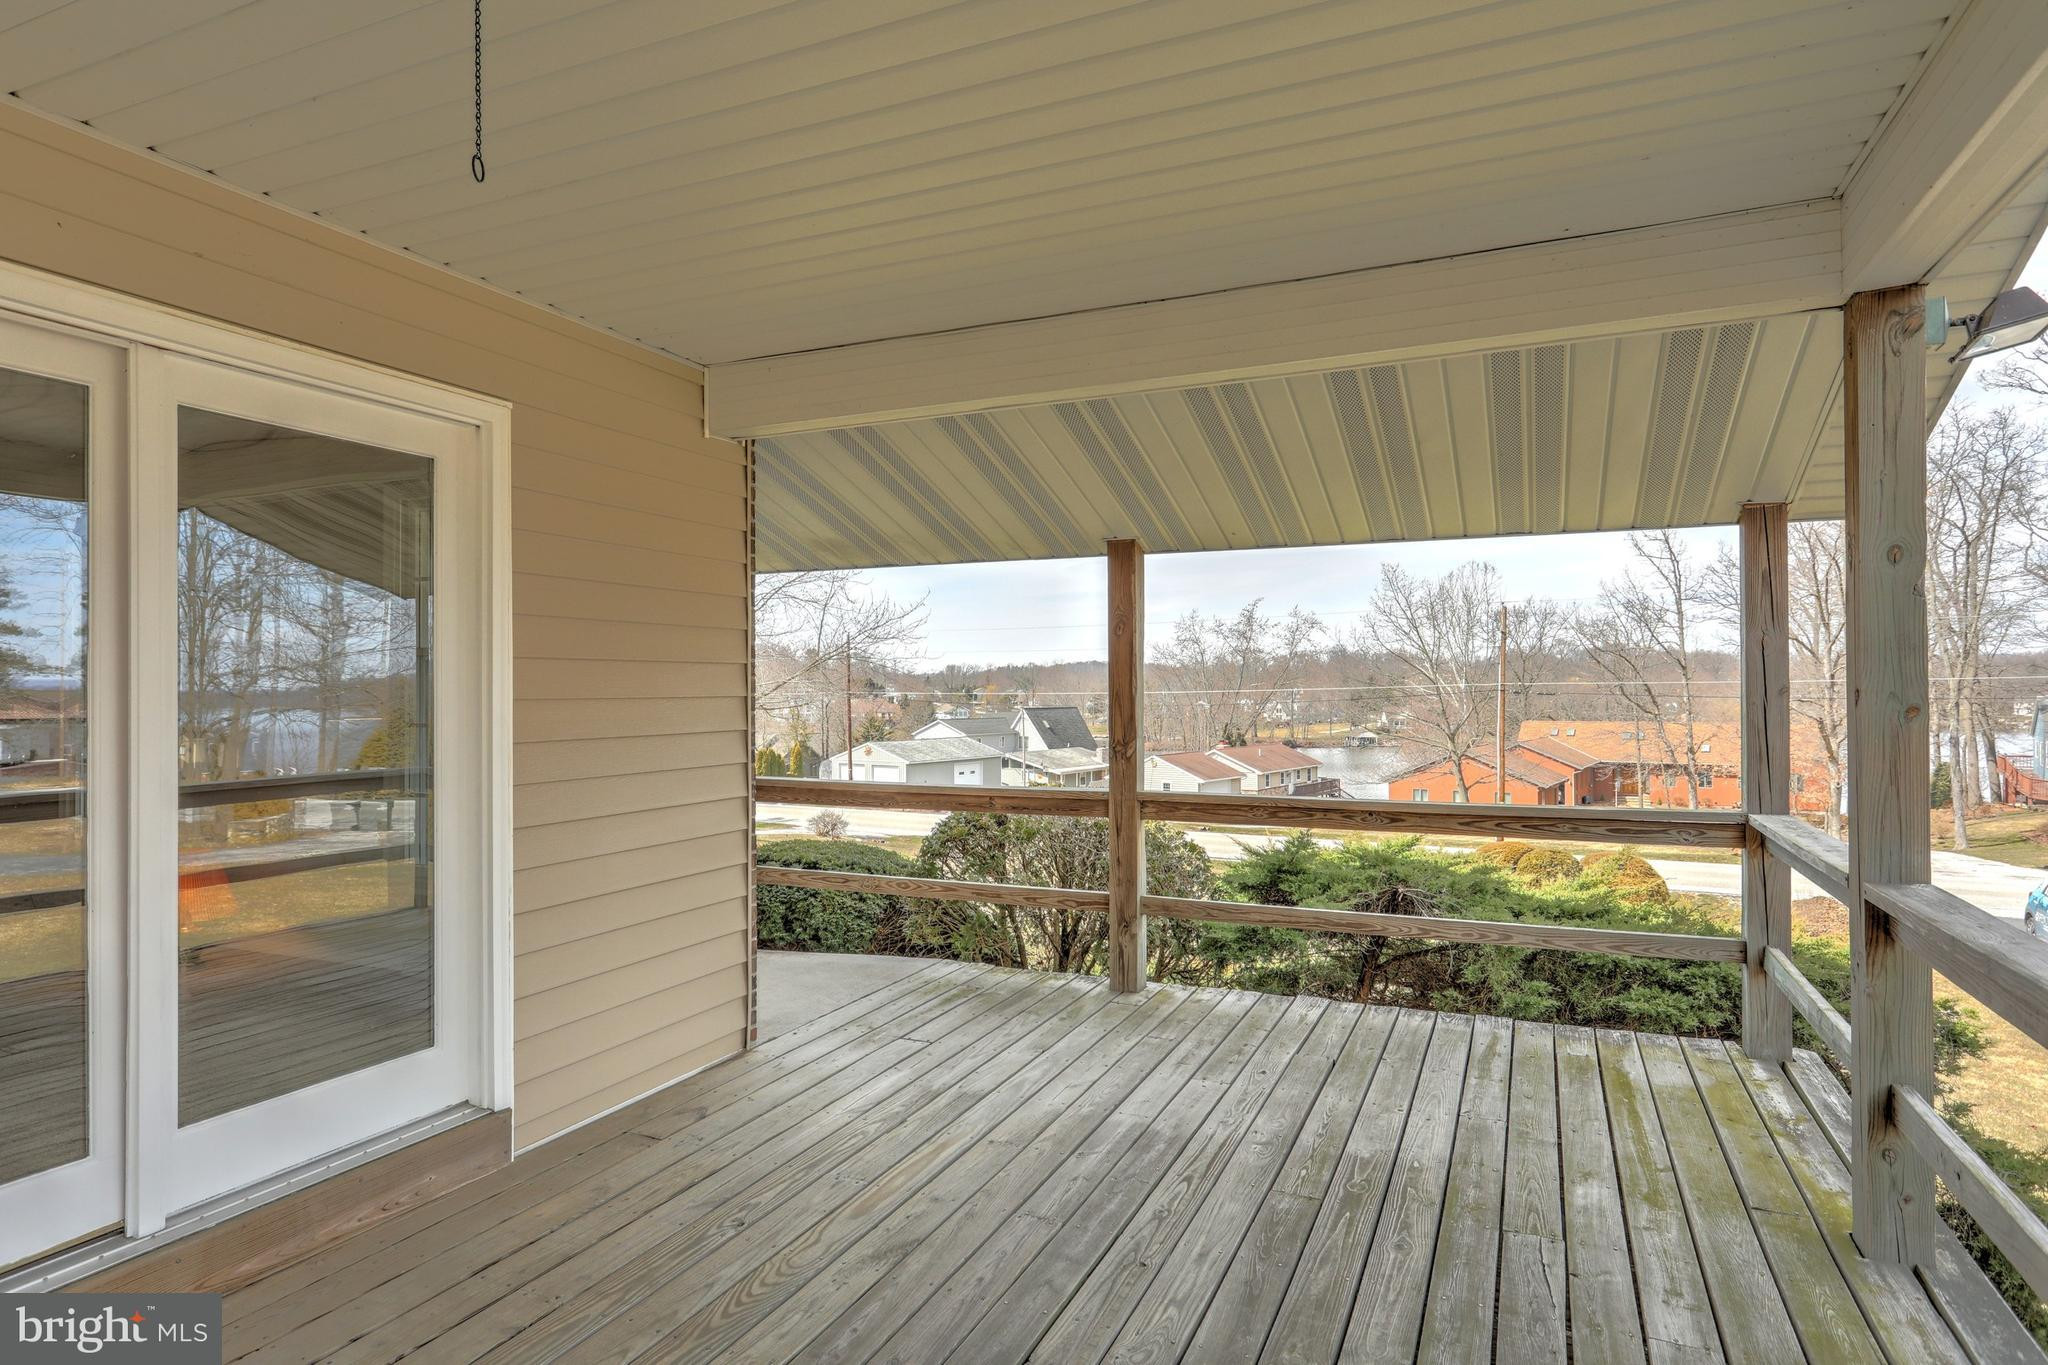 armstrong hardwood flooring company lancaster pa of 373 lake meade drive east berlin 17316 sold listing mls within 373 lake meade drive east berlin pa 17316